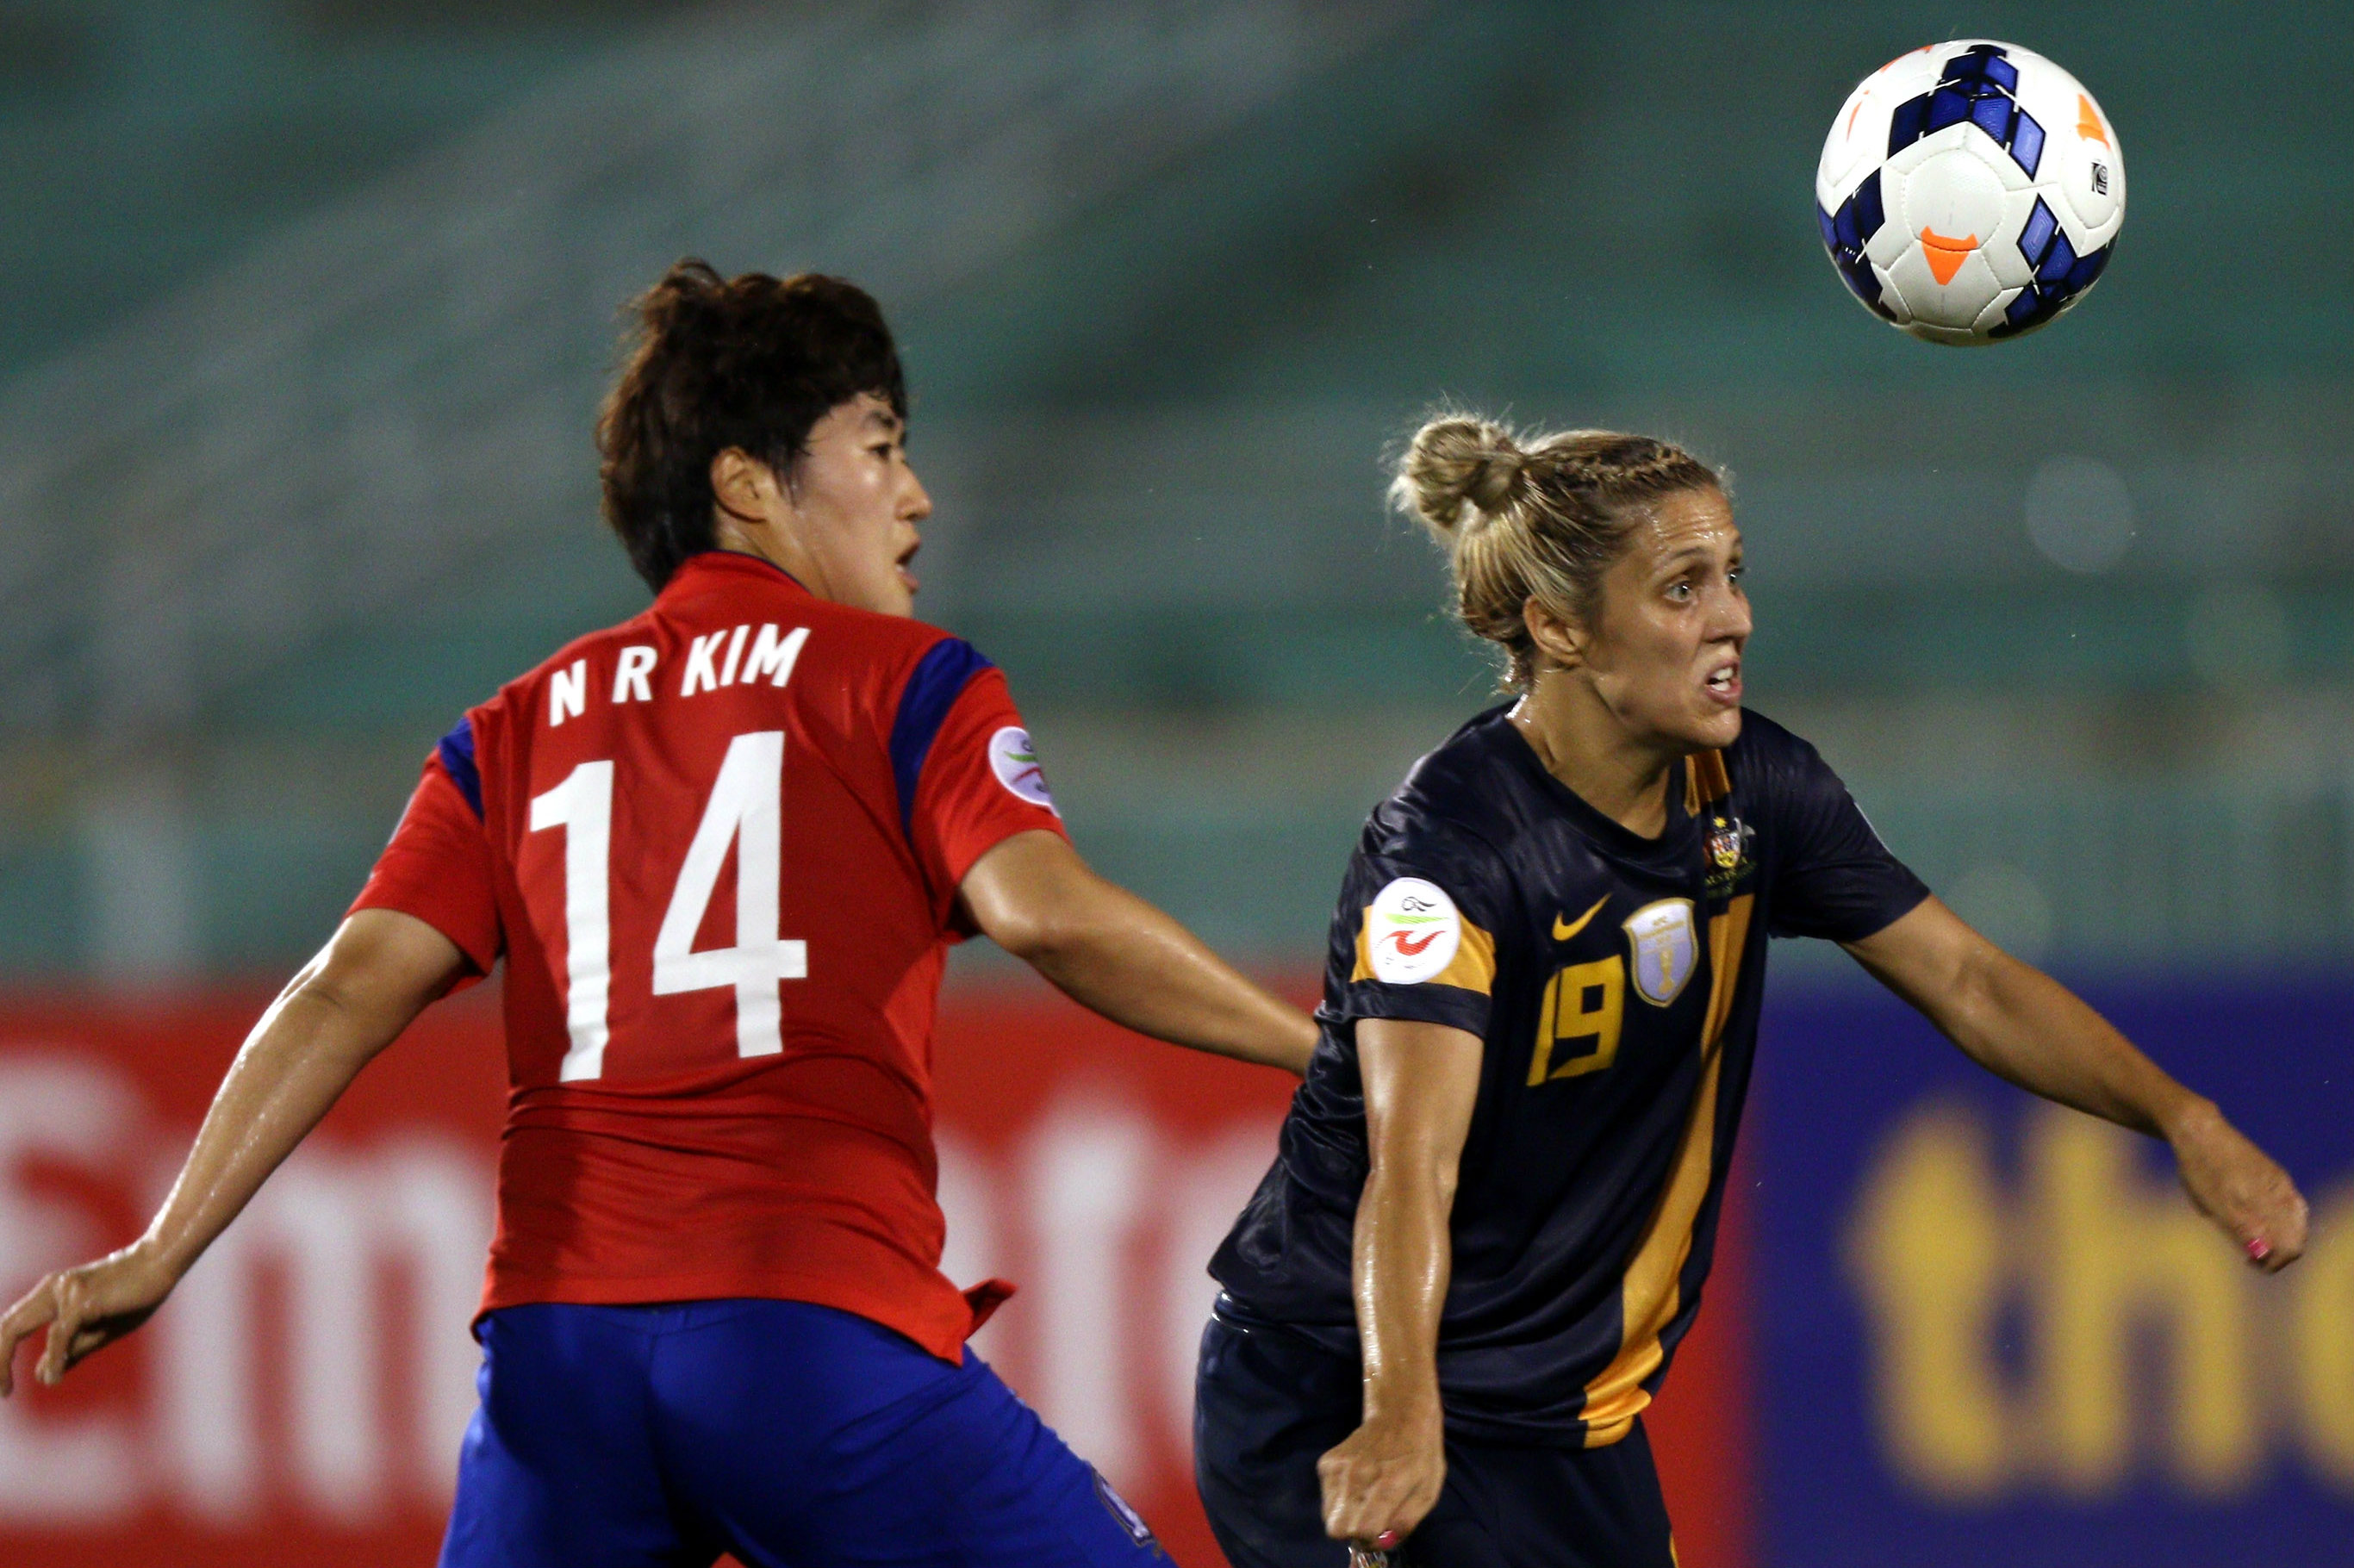 Katrina Gorry opened the scoring in the Asian Cup semi in 2014.